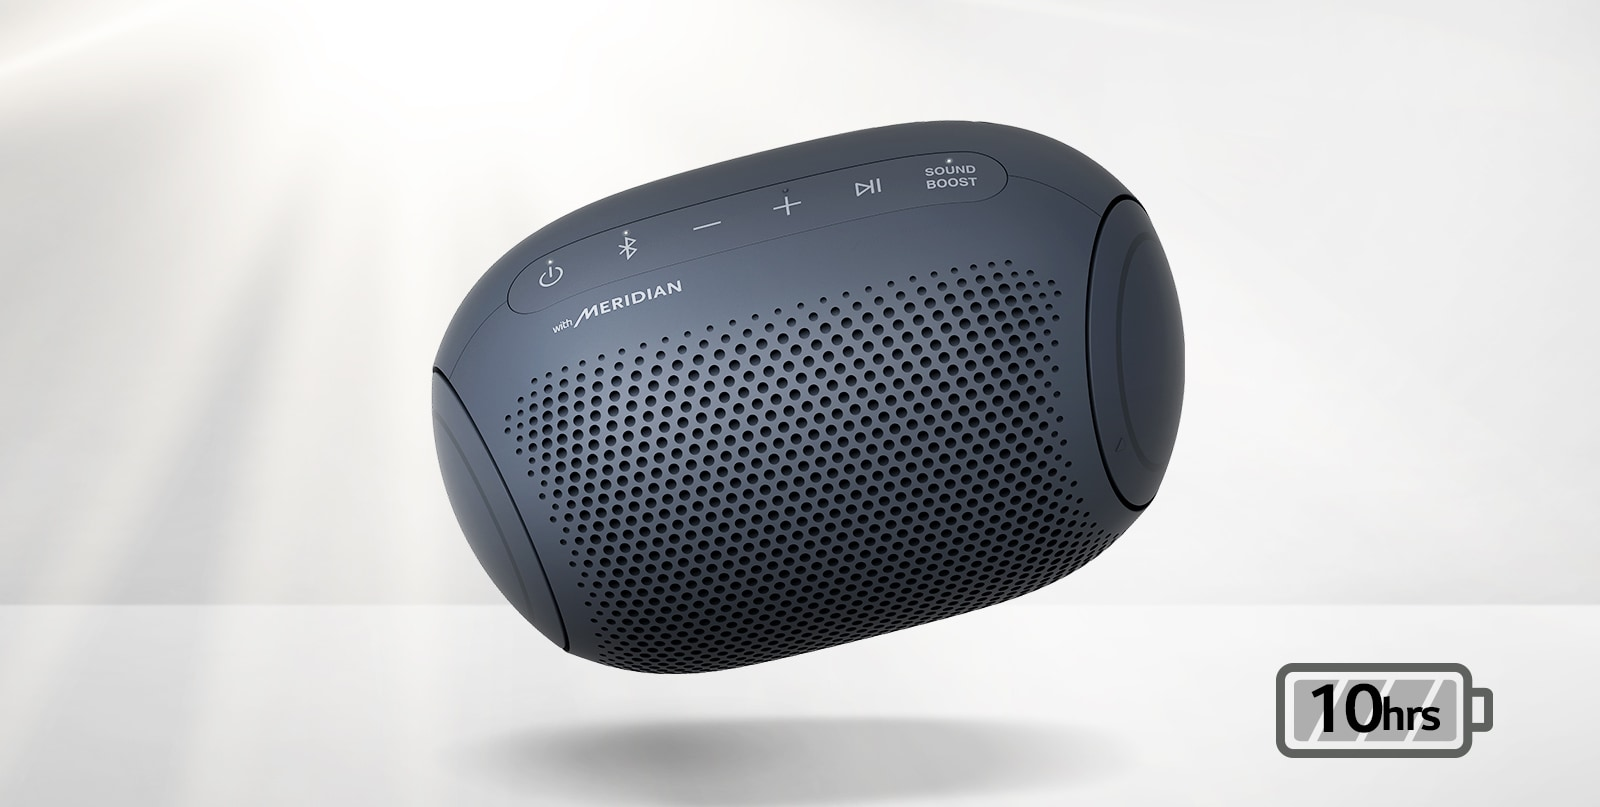 LG XBOOM Go tilts to the left and floats in the air.